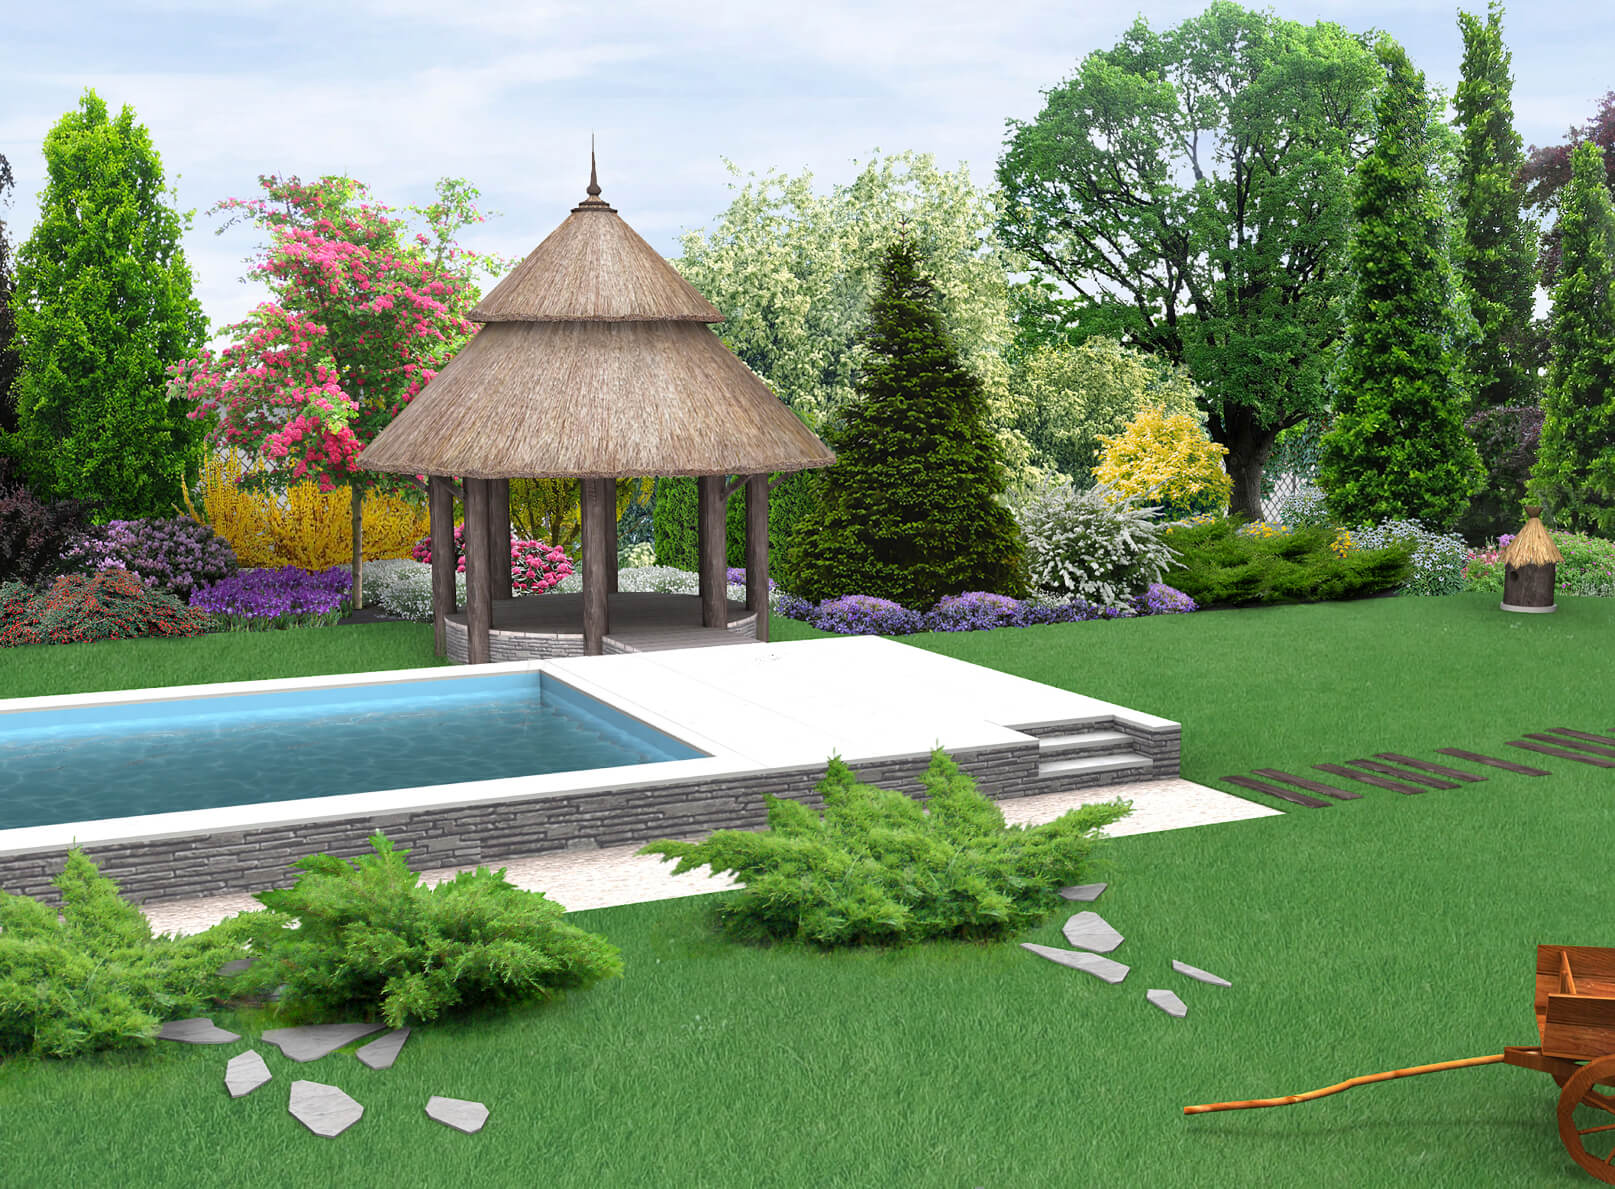 This small gazebo is a nice shady spot to sit by the pool. The thatched roof gives it an interesting rustic island appeal.